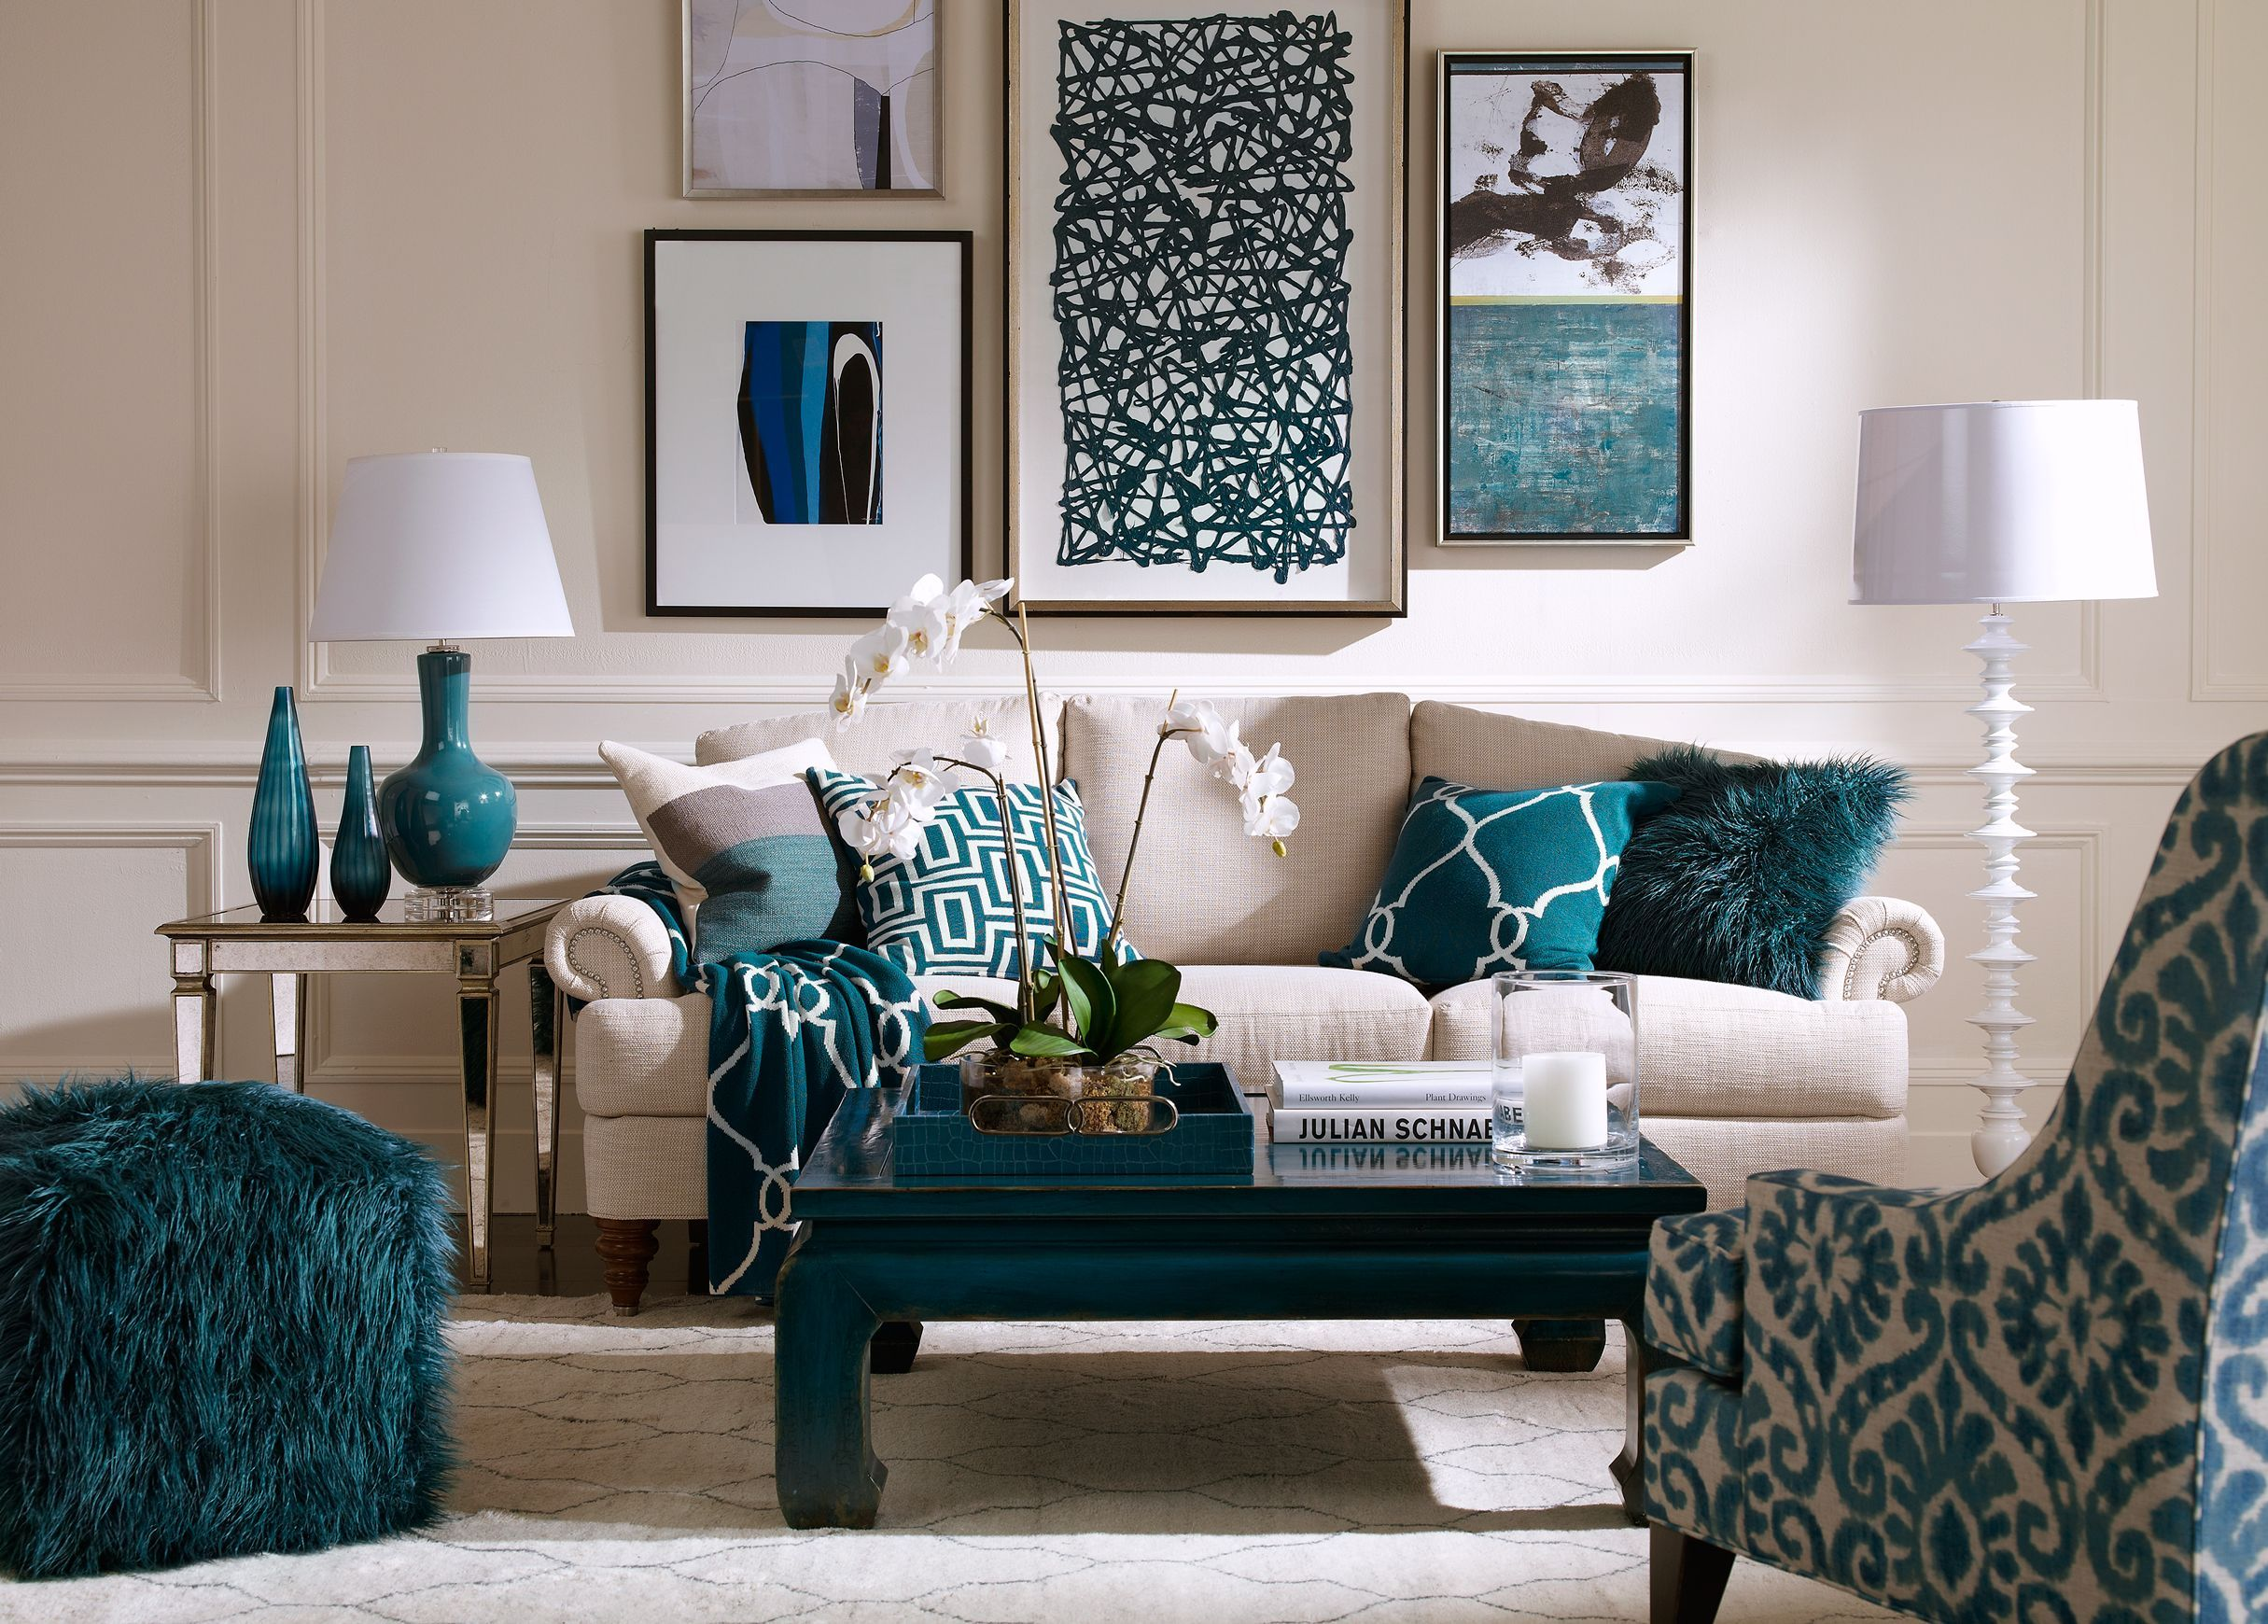 Turquoise Dining Room Ideas, Turquoise Rooms, Turquoise ...